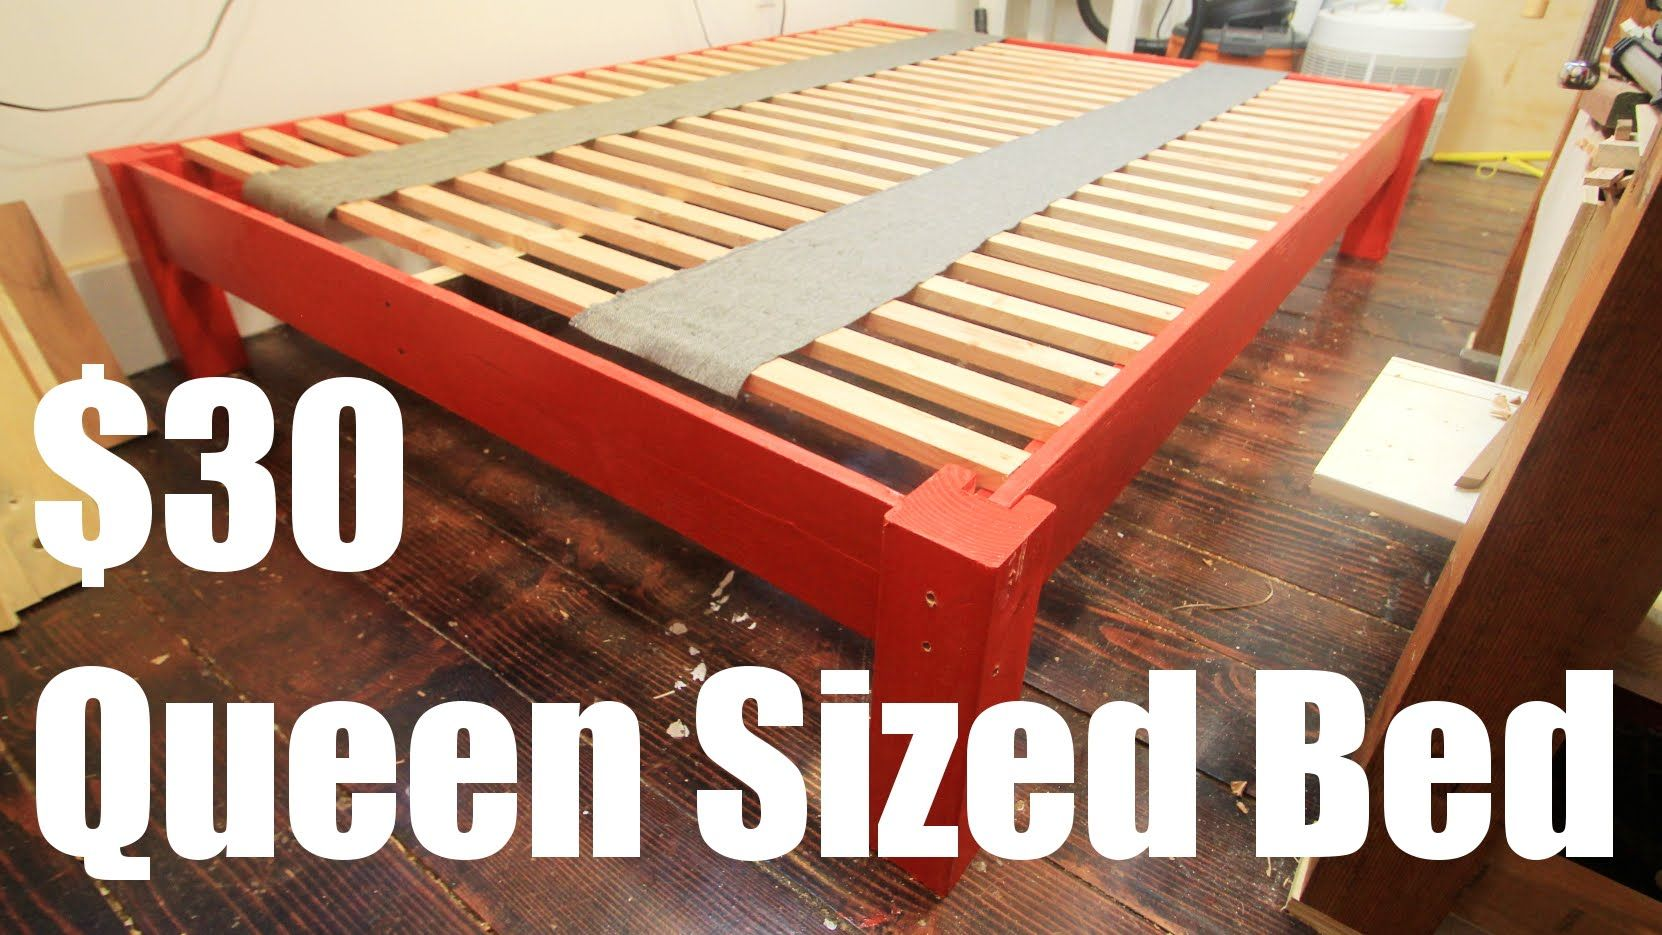 How To Make A Queen Sized Bed Frame For Under 30 Queen Size Bed